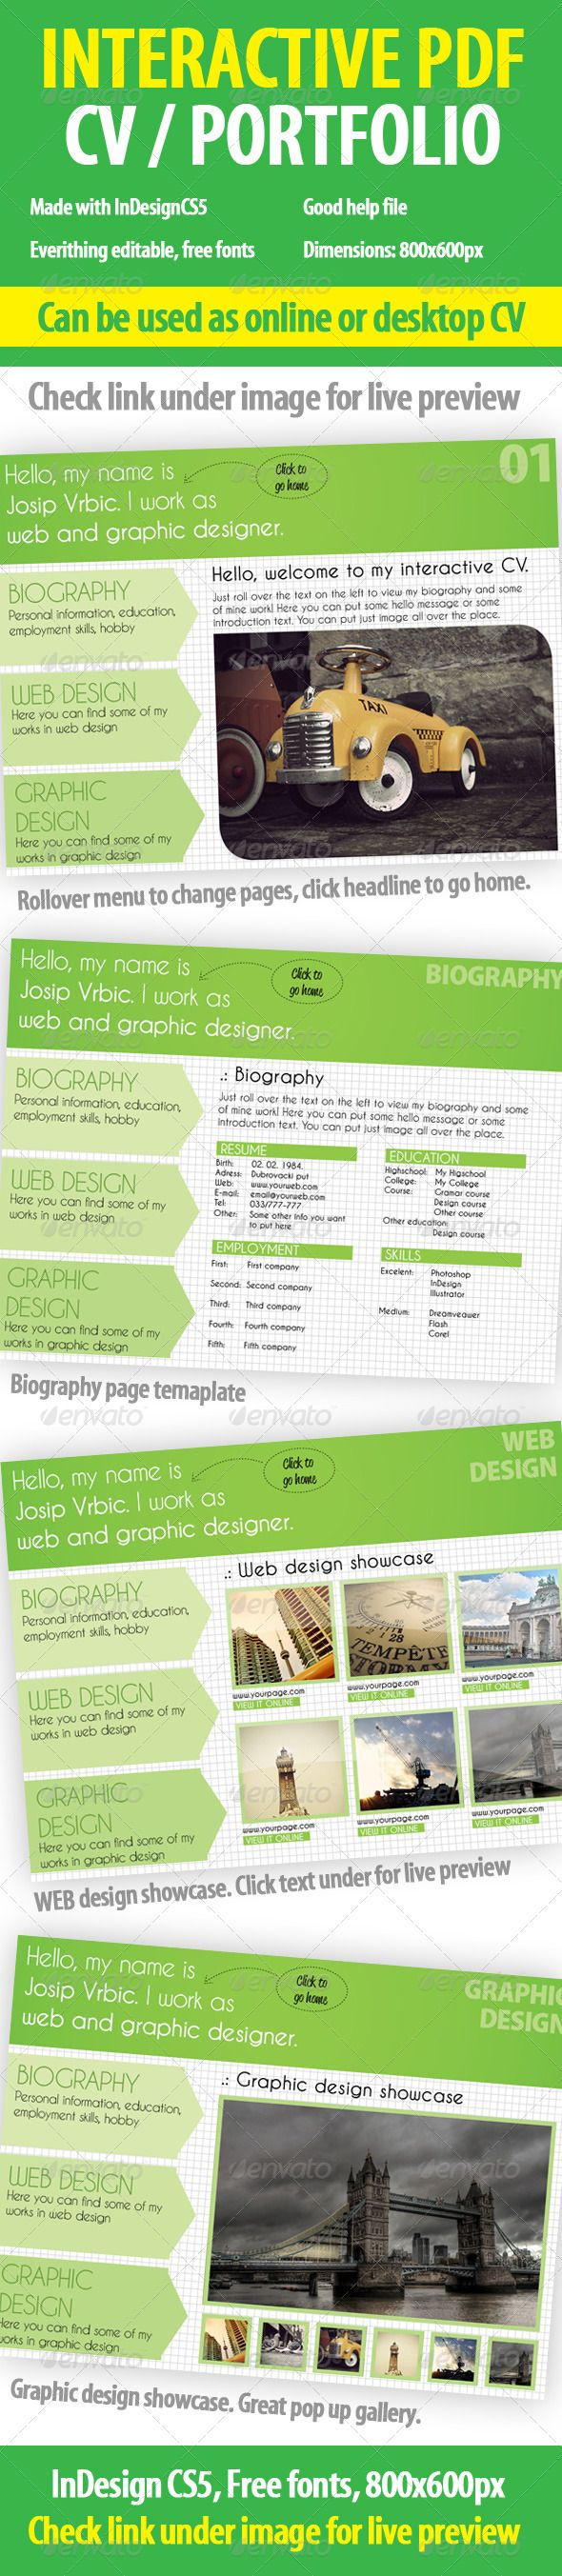 free indesign portfolio templates - interactive cv portfolio pdf indesign template